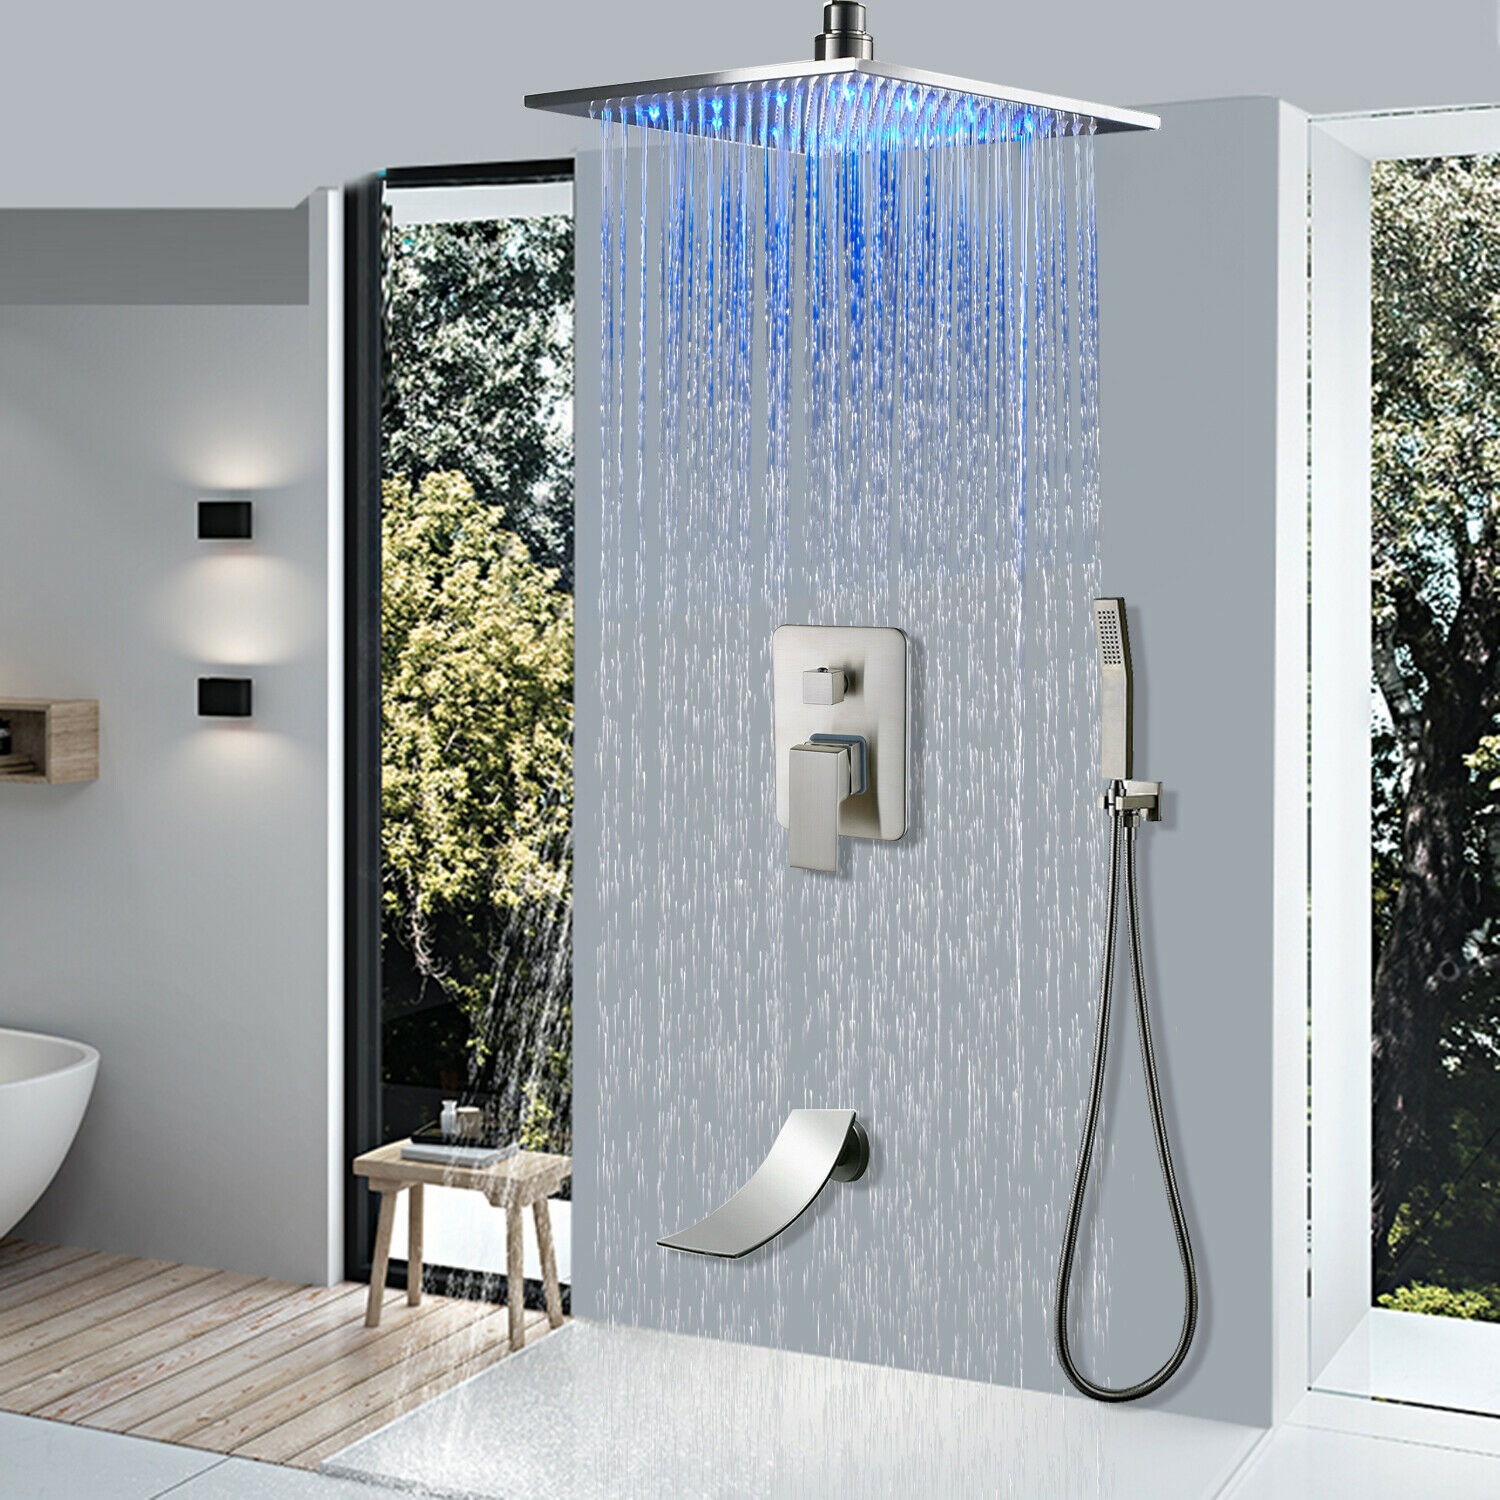 Details About Ceiling Mount 12 Brushed Nickel Led Shower Combo Set Tub Tap W Hand Shower Mixer